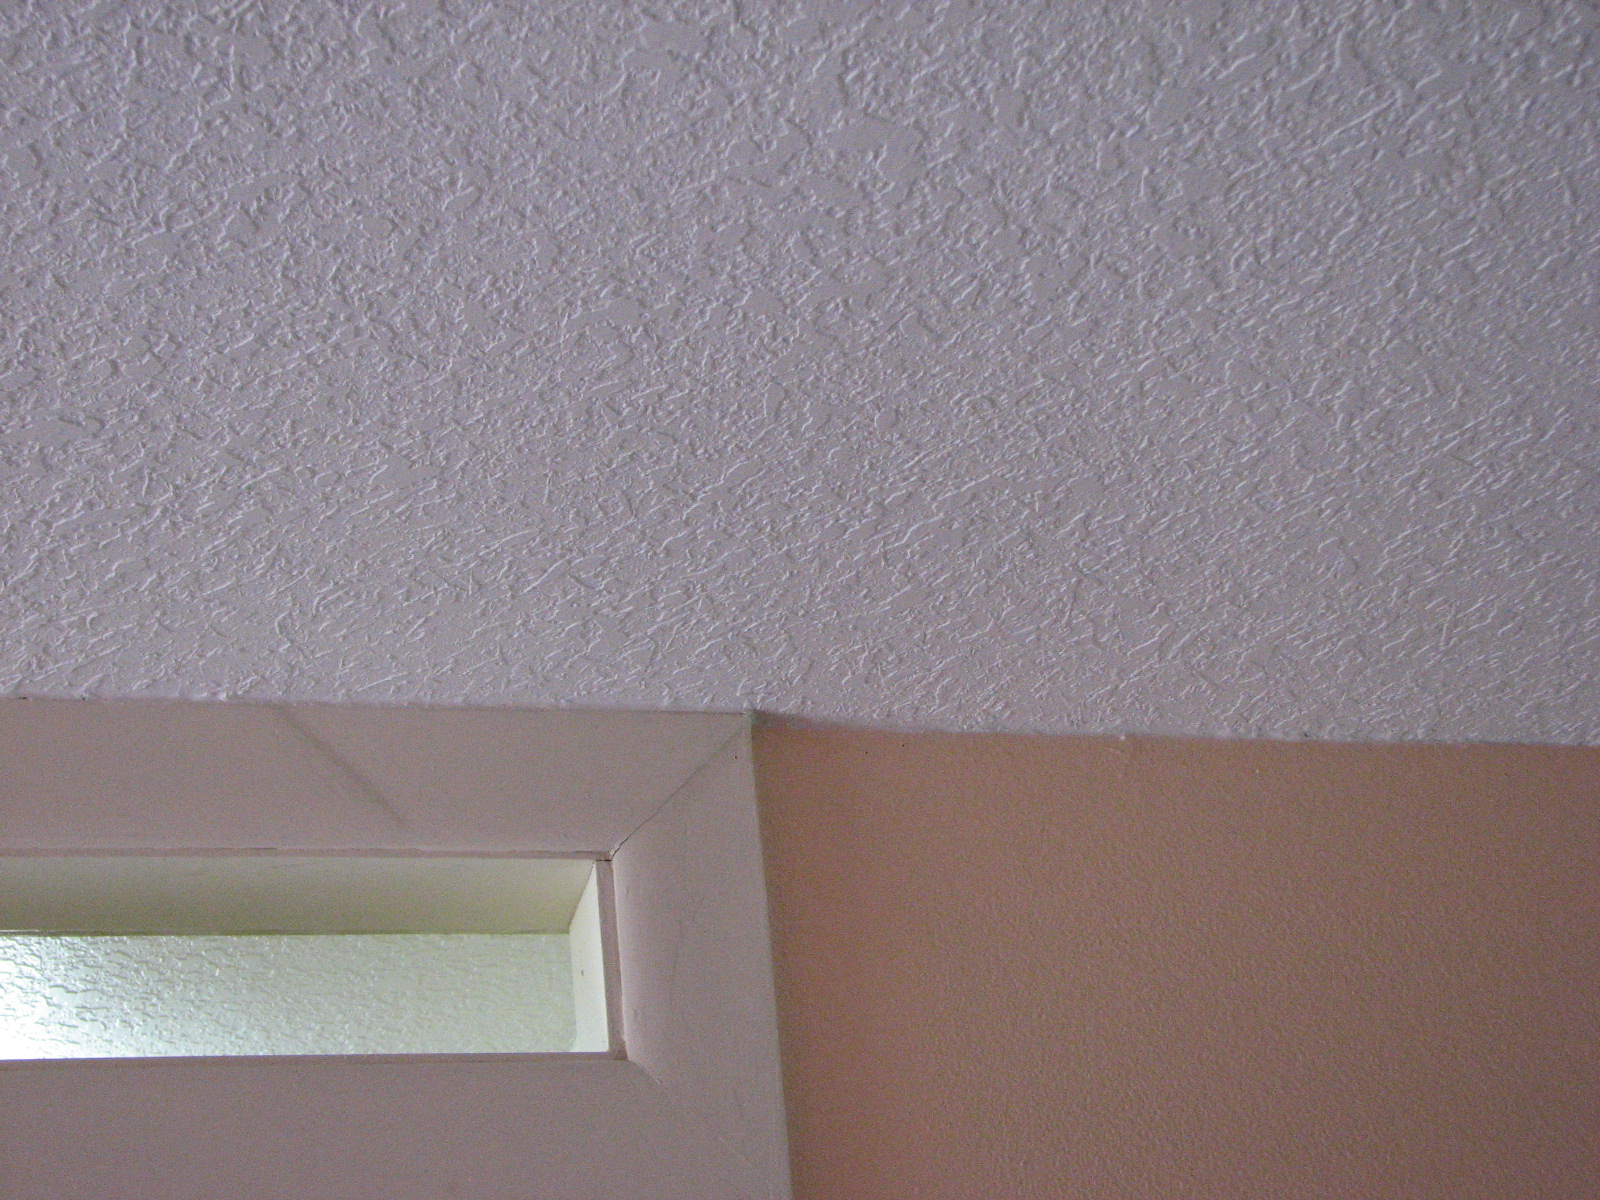 attic handle ideas - Ceiling Repair Melbourne Fl Drywall repair